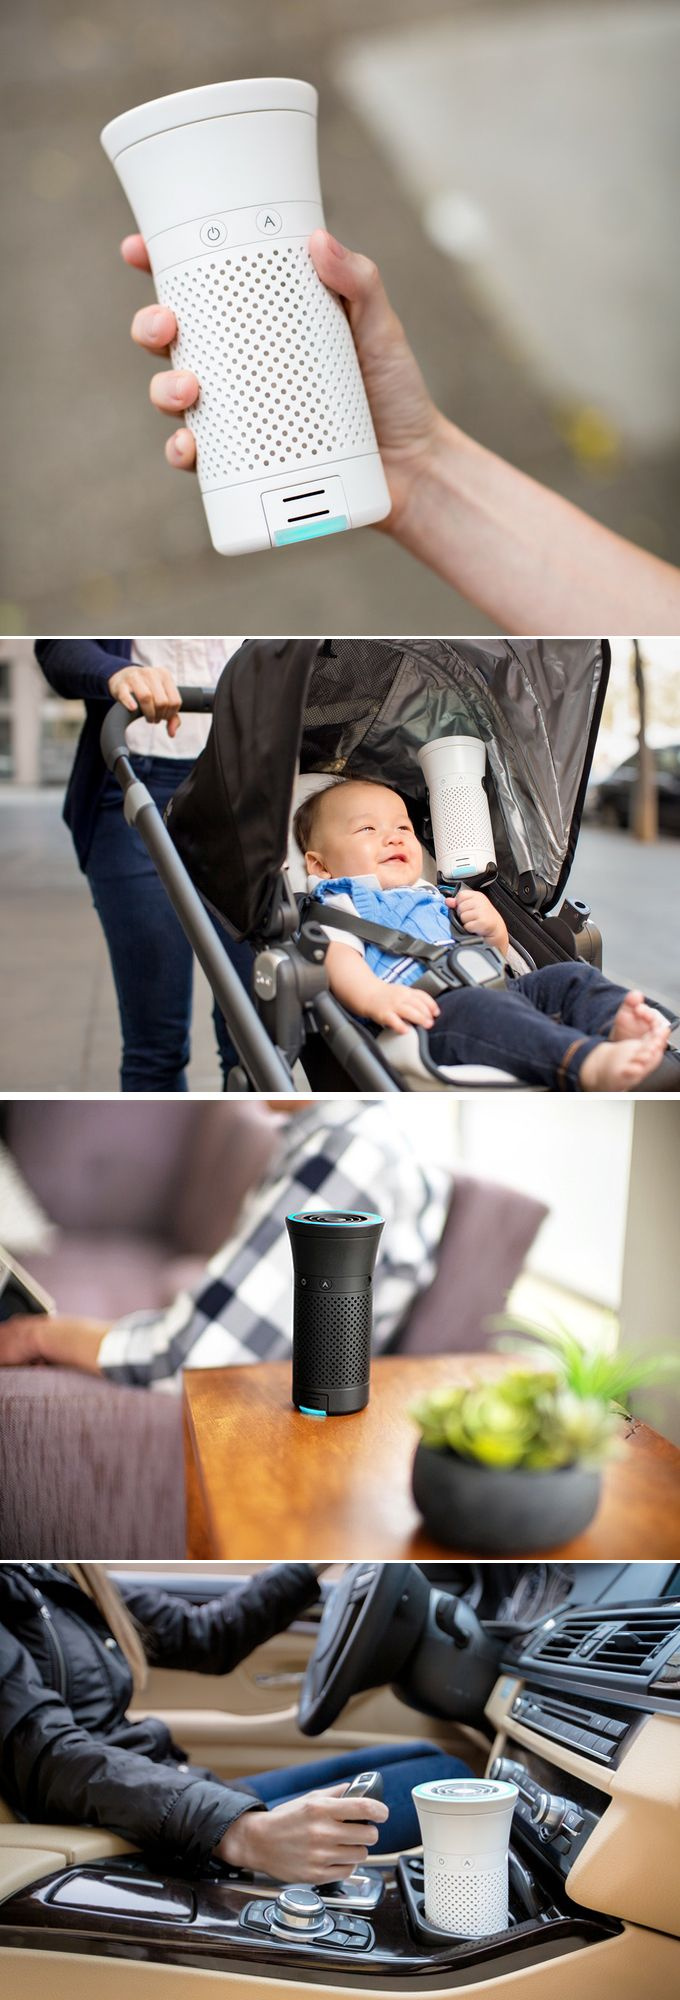 Light and portable, Wynd, makes sure the air you breathe is clean. Check it out==> | Wynd - The Smartest Air Purifier For Your Personal Space | http://gwyl.io/wynd-air-purifier/